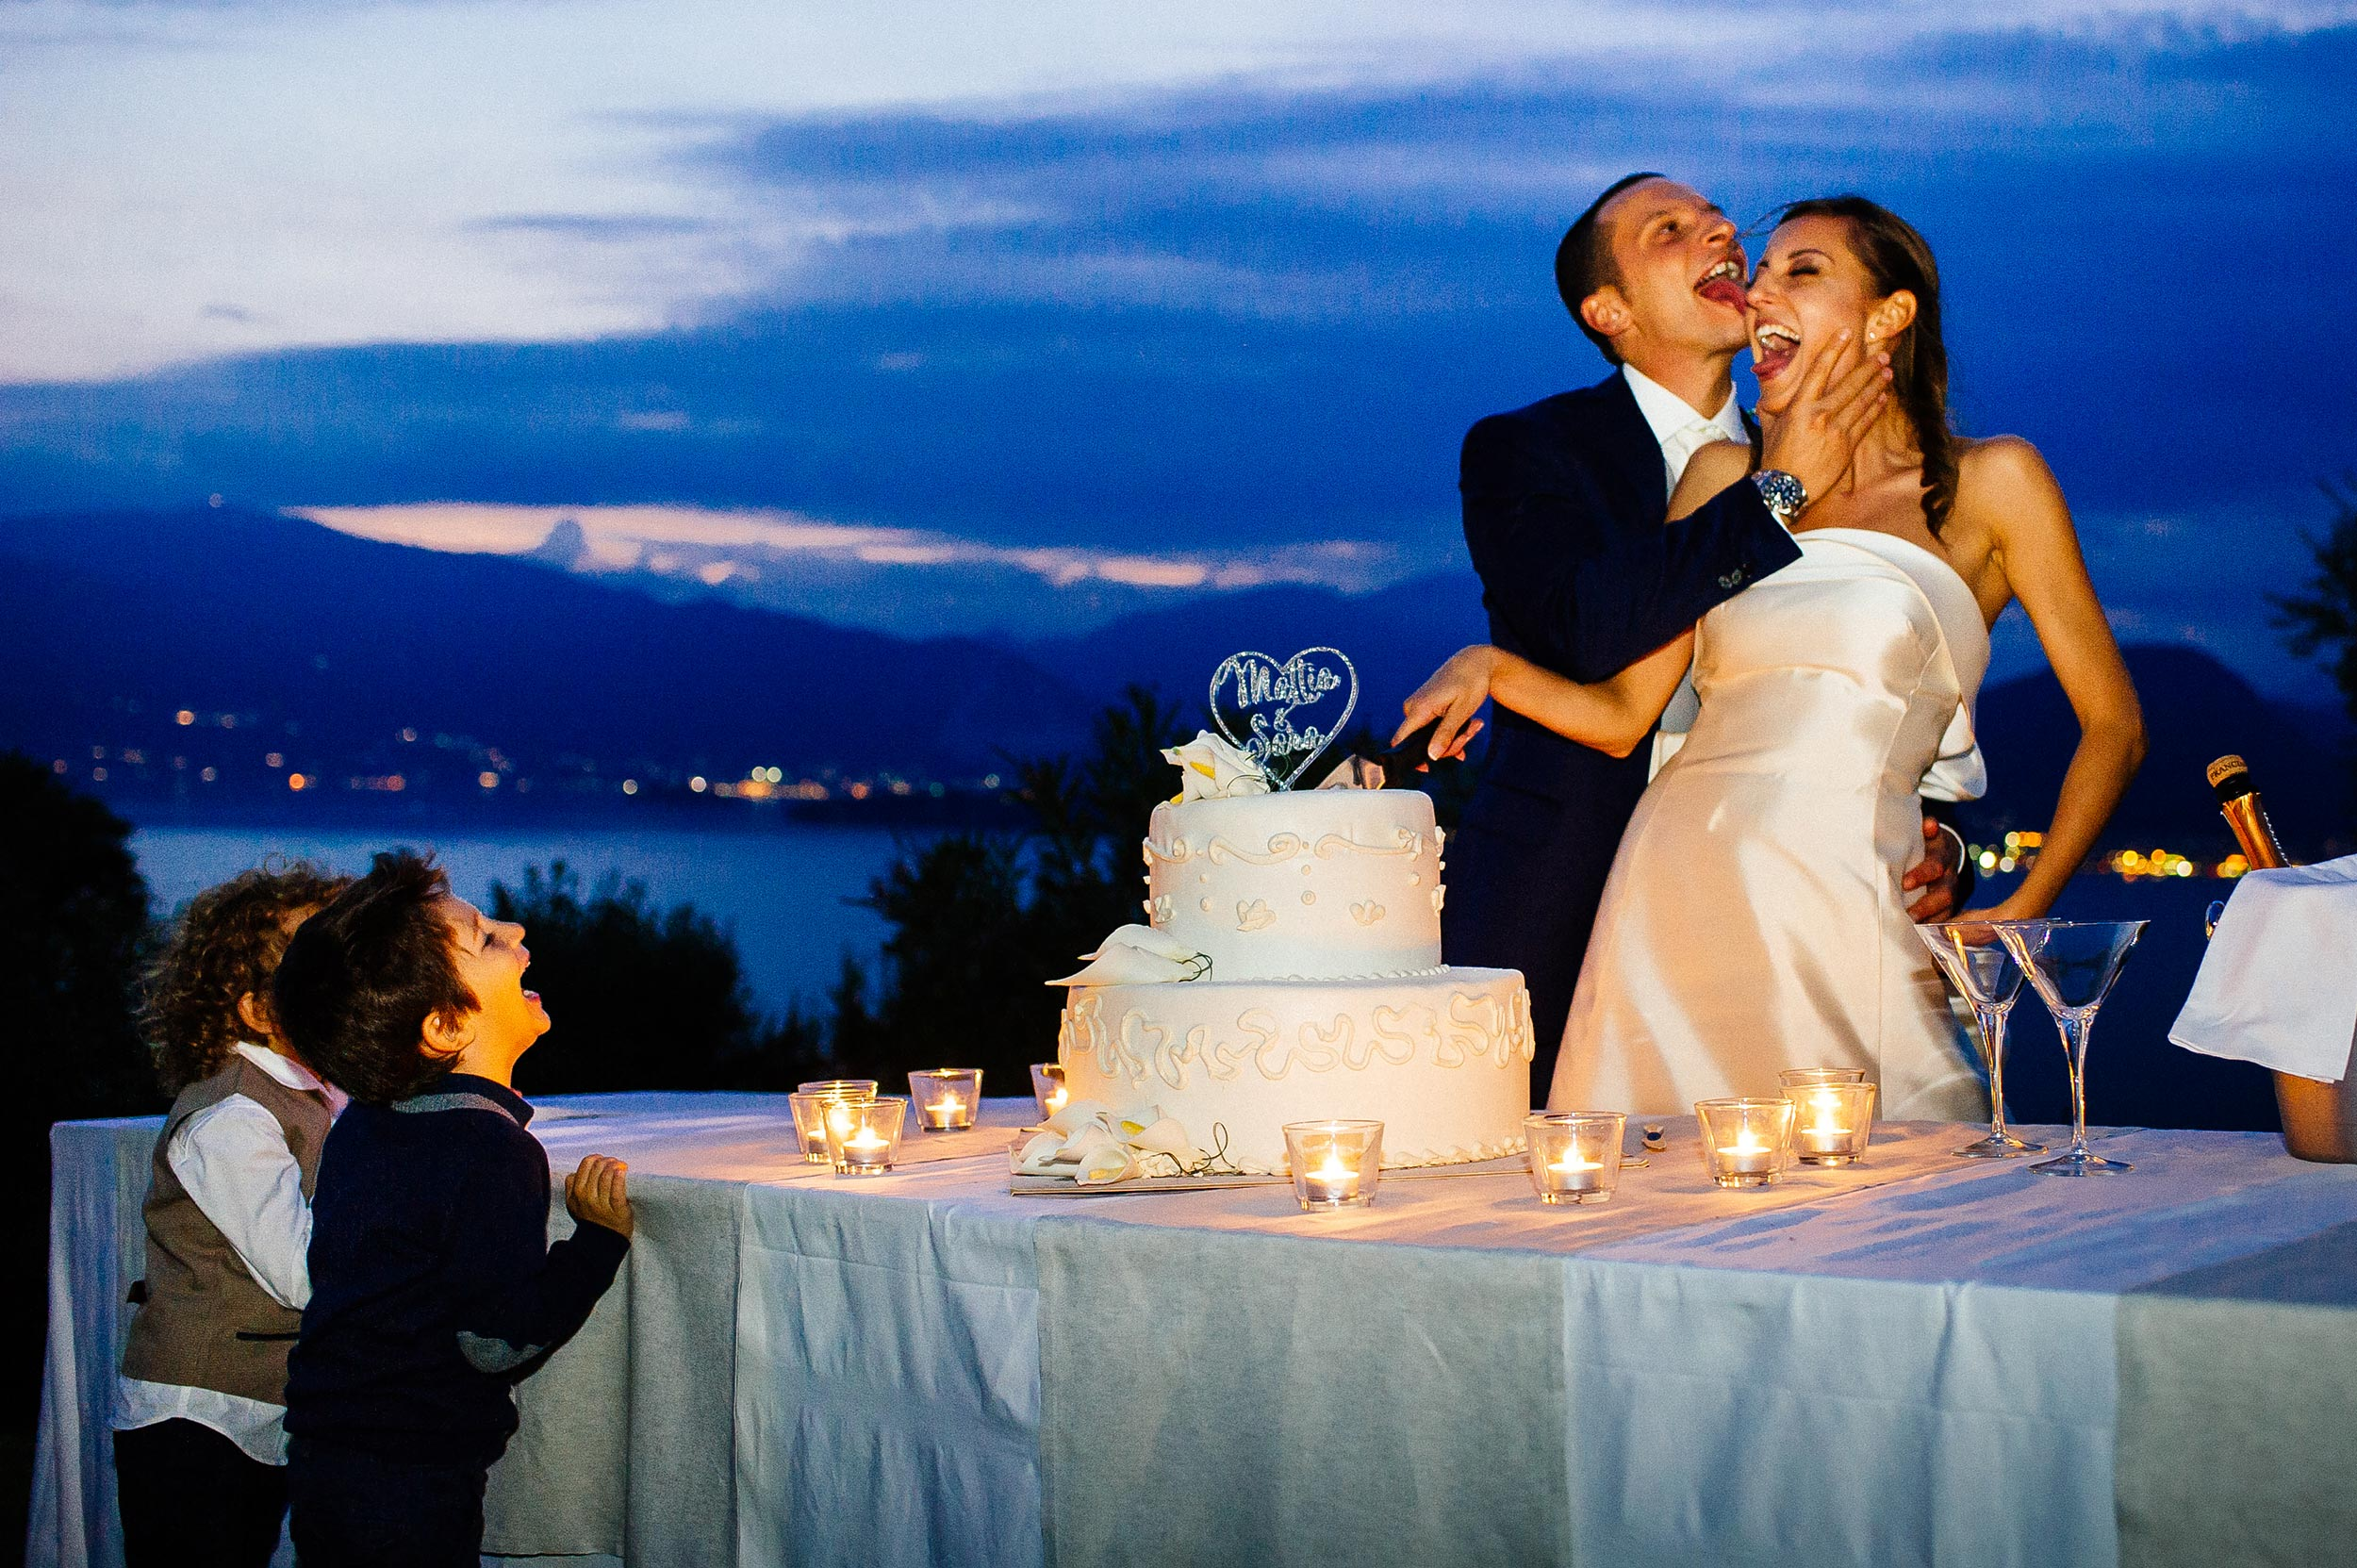 kids-laugh-at-groom-licking-brides-face-during-cake-cutting-colors.jpg